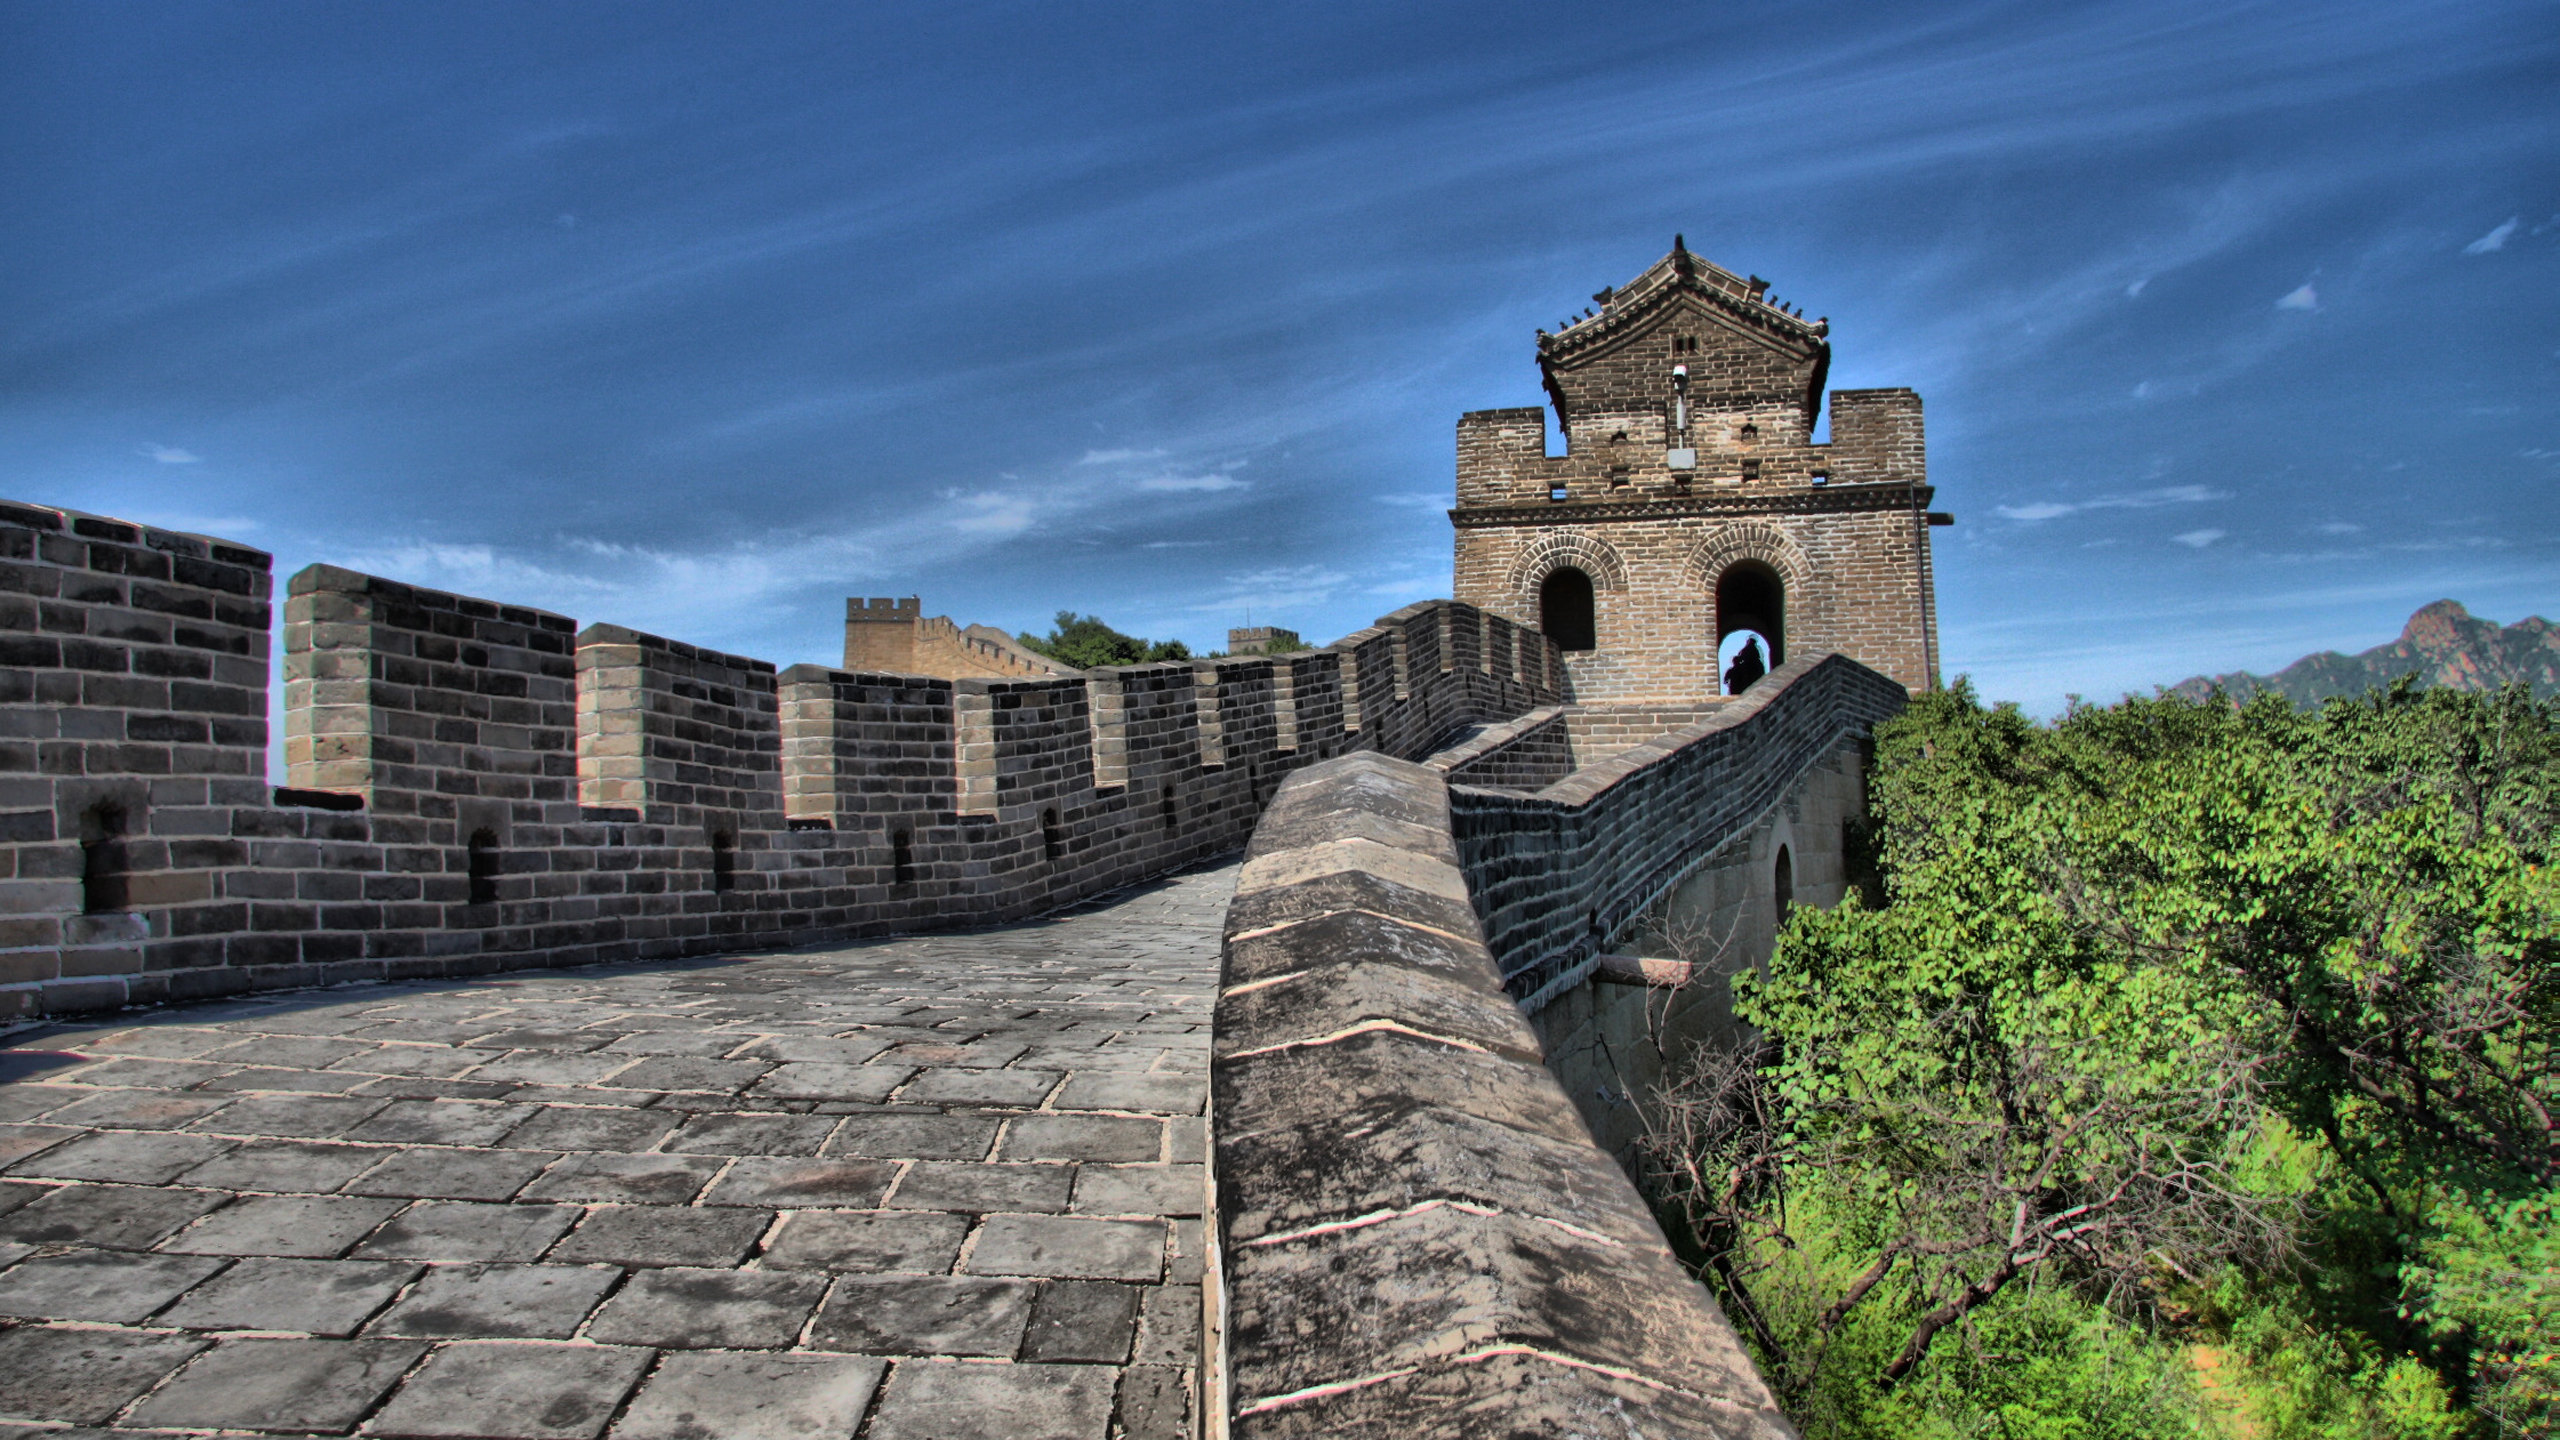 Great wall of china wallpapers 36536 2560x1440 px for Wallpaper images for house walls